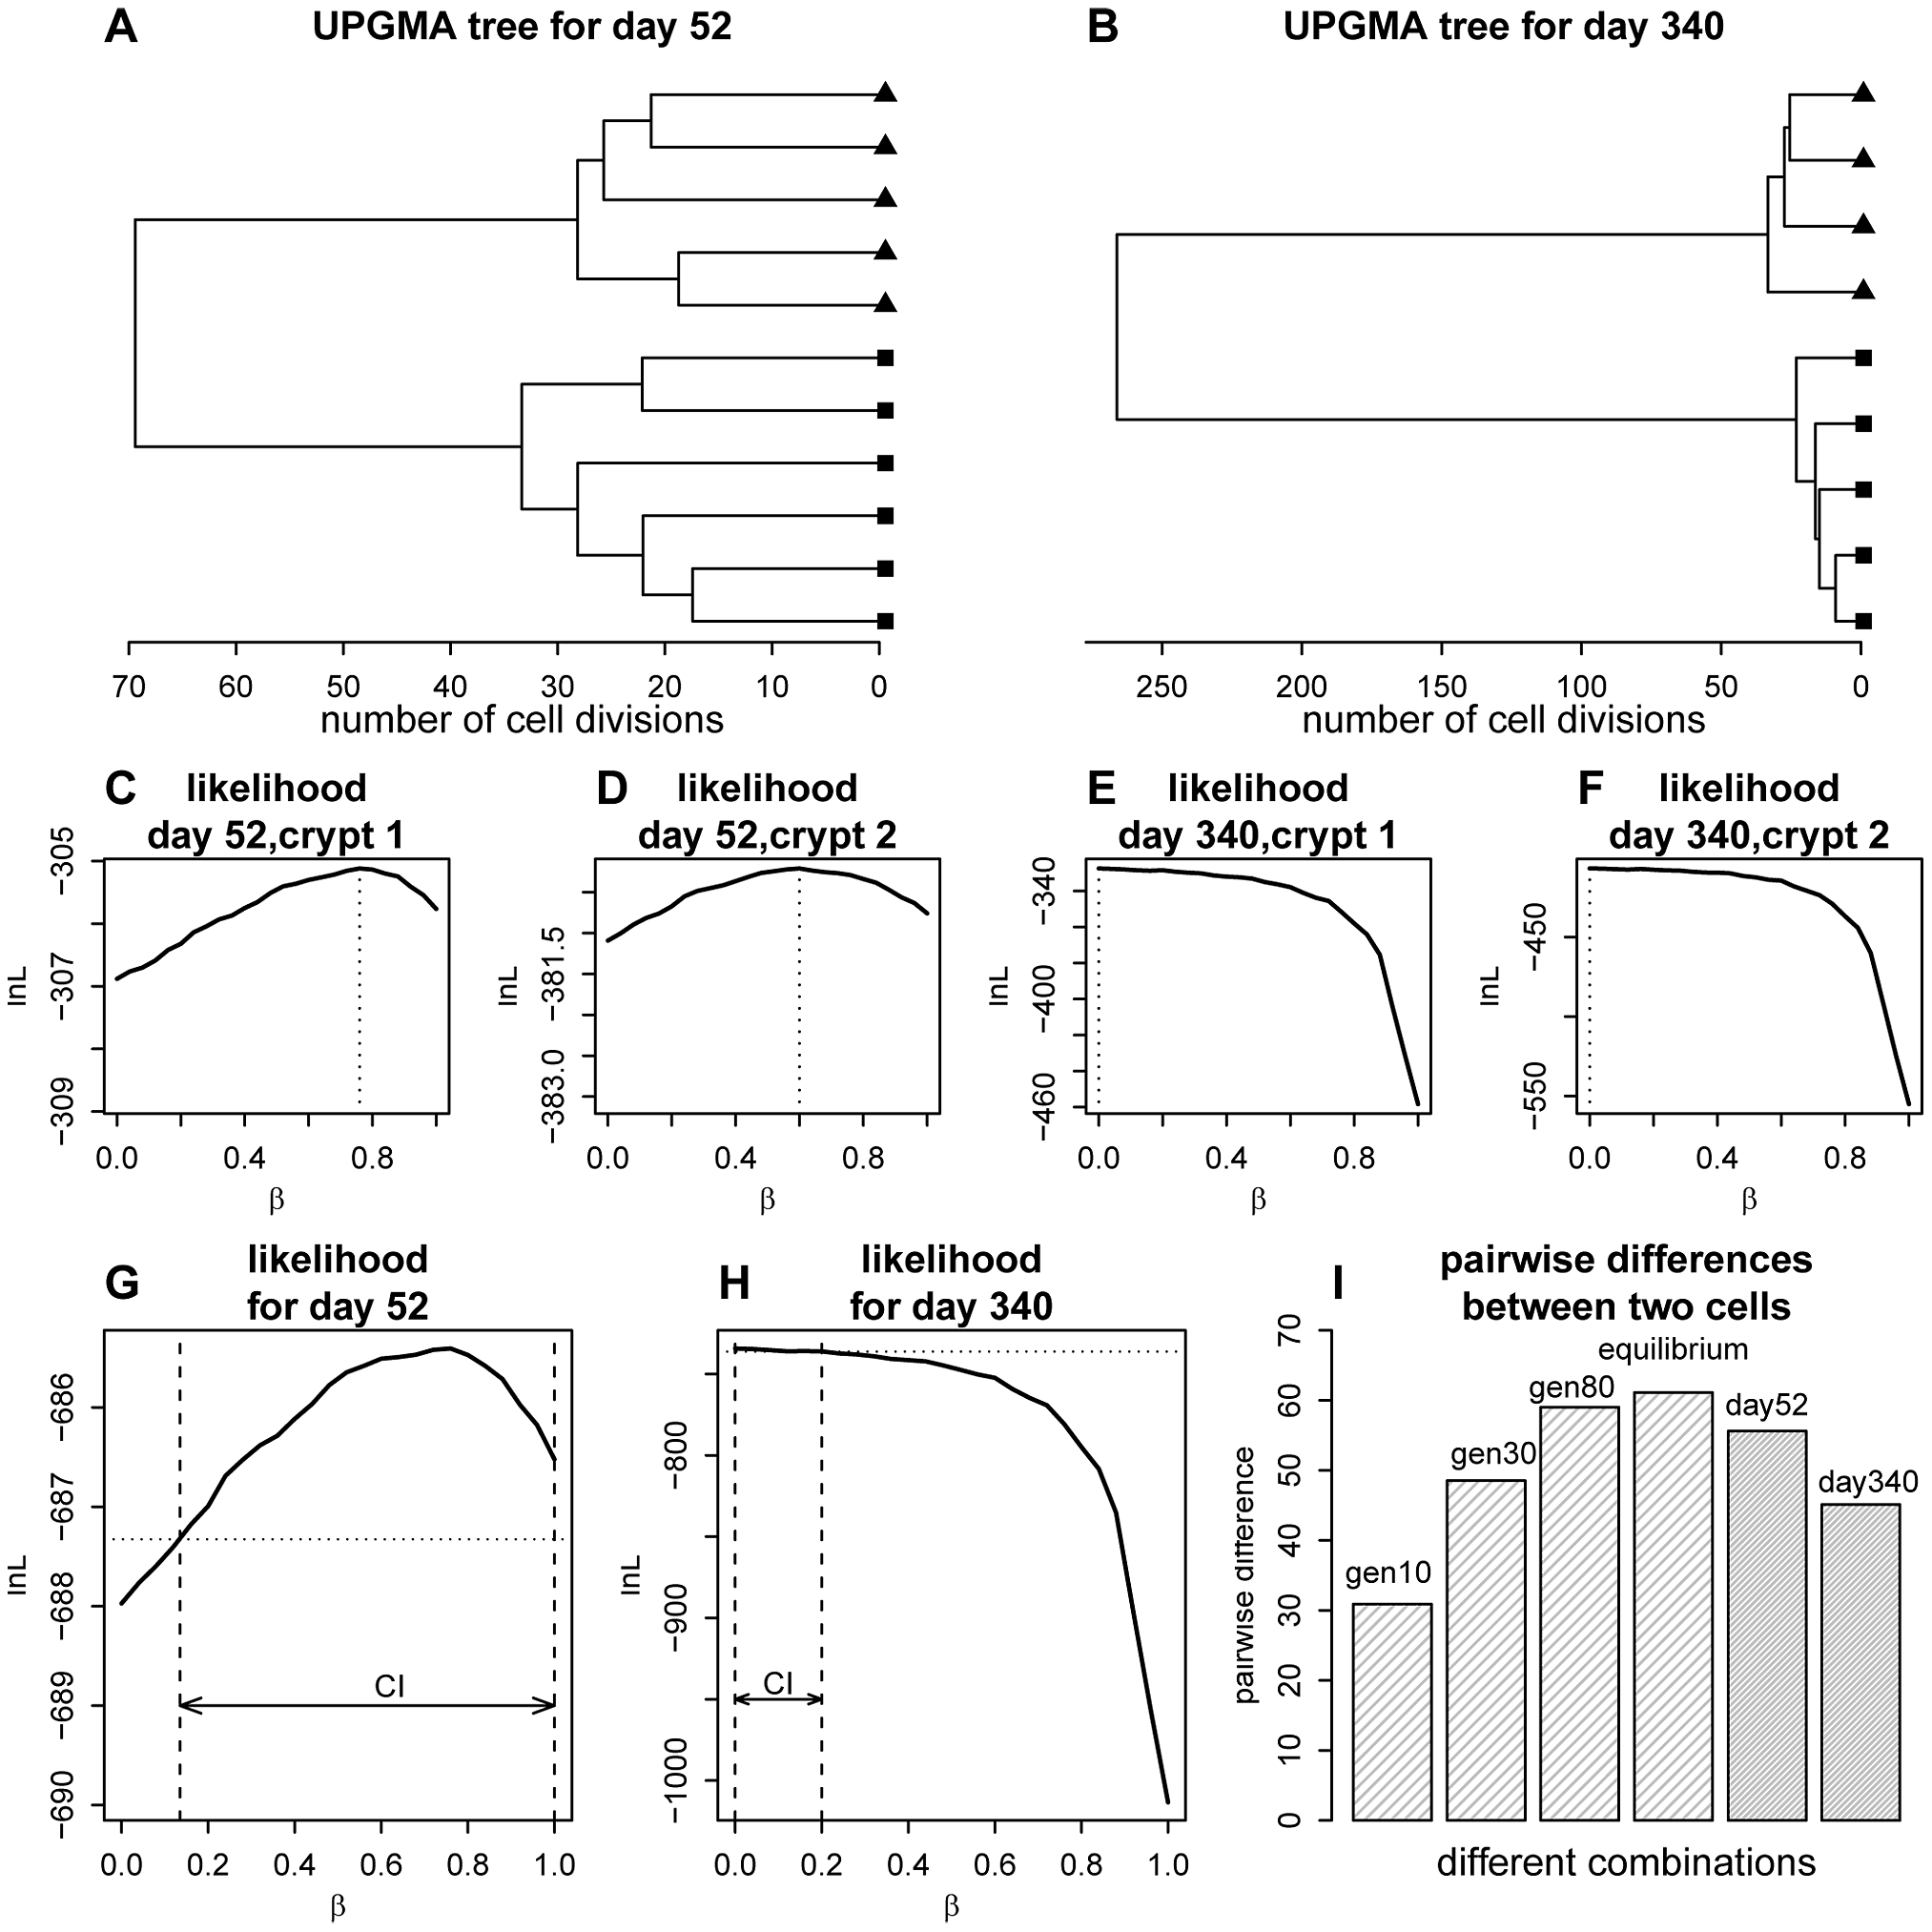 Phylogenetic relationships for the crypt single cells and likelihood curve for the proportion of asymmetric divisions.